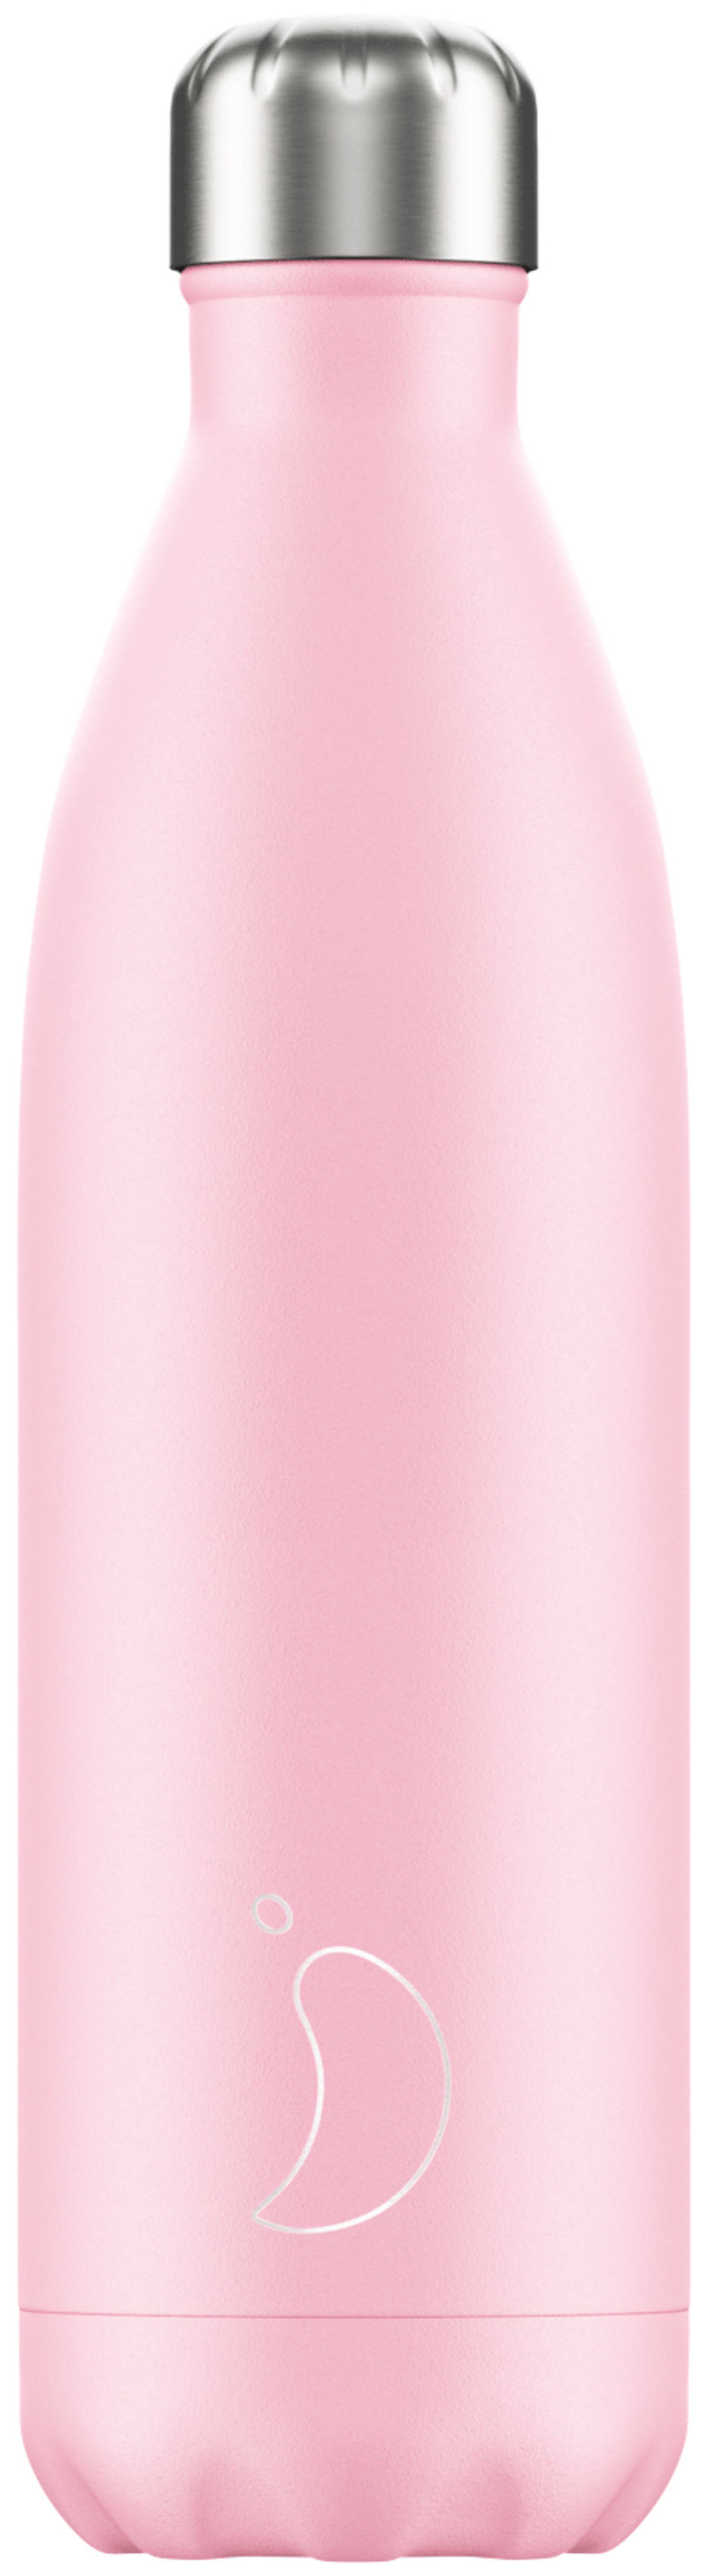 BOTELLA INOX ROSA PASTEL 750ML